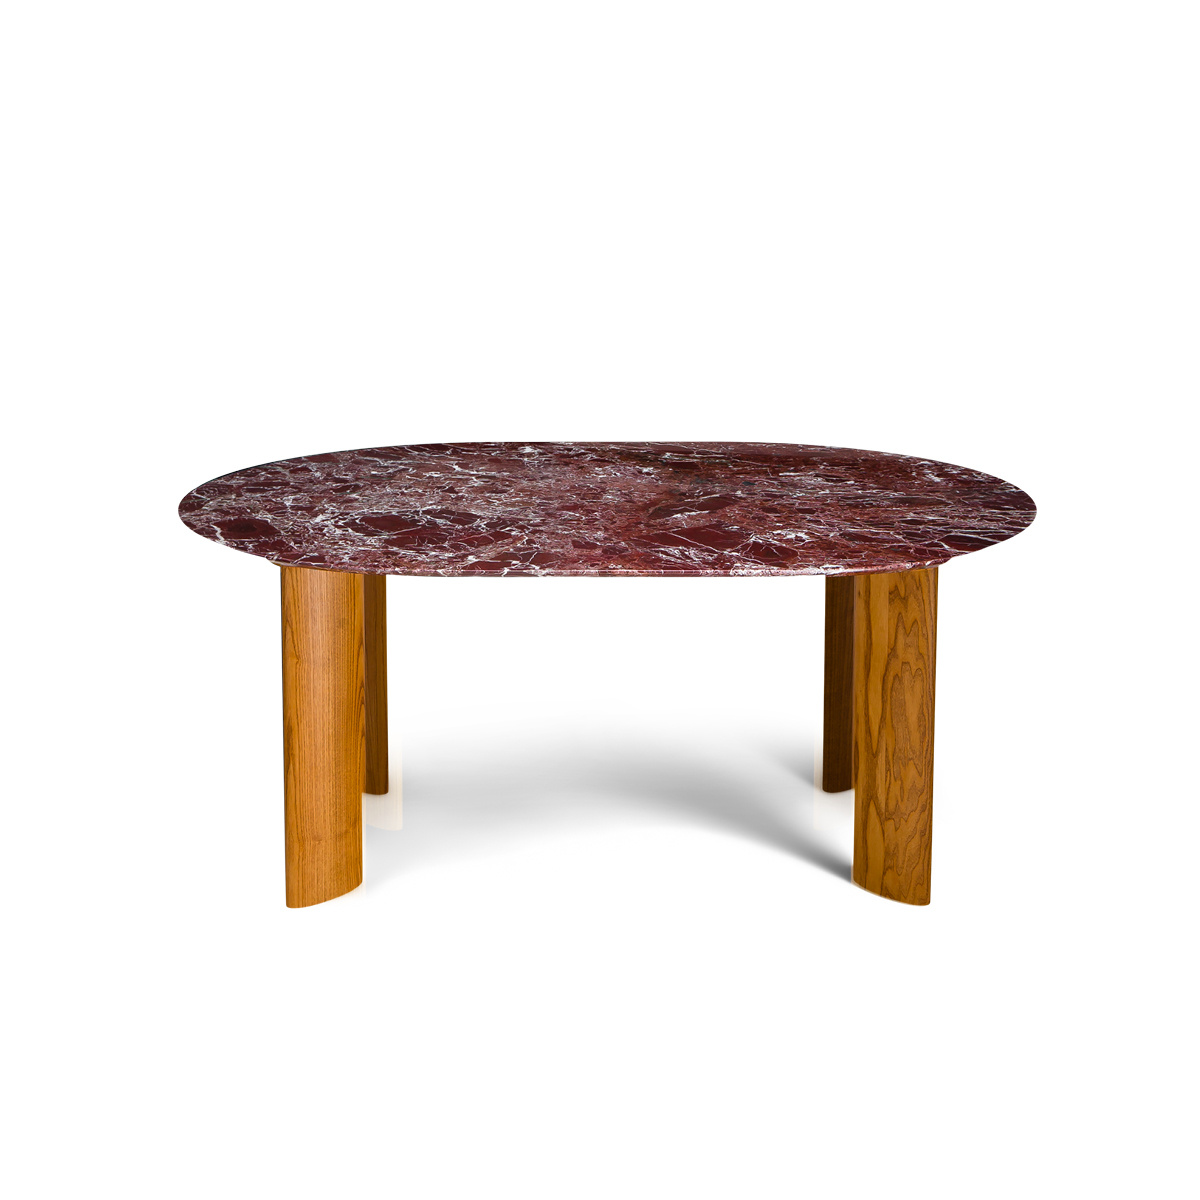 Carlotta Alta Dining Table Red Marble and Iroko Finish Legs - 6 Seats